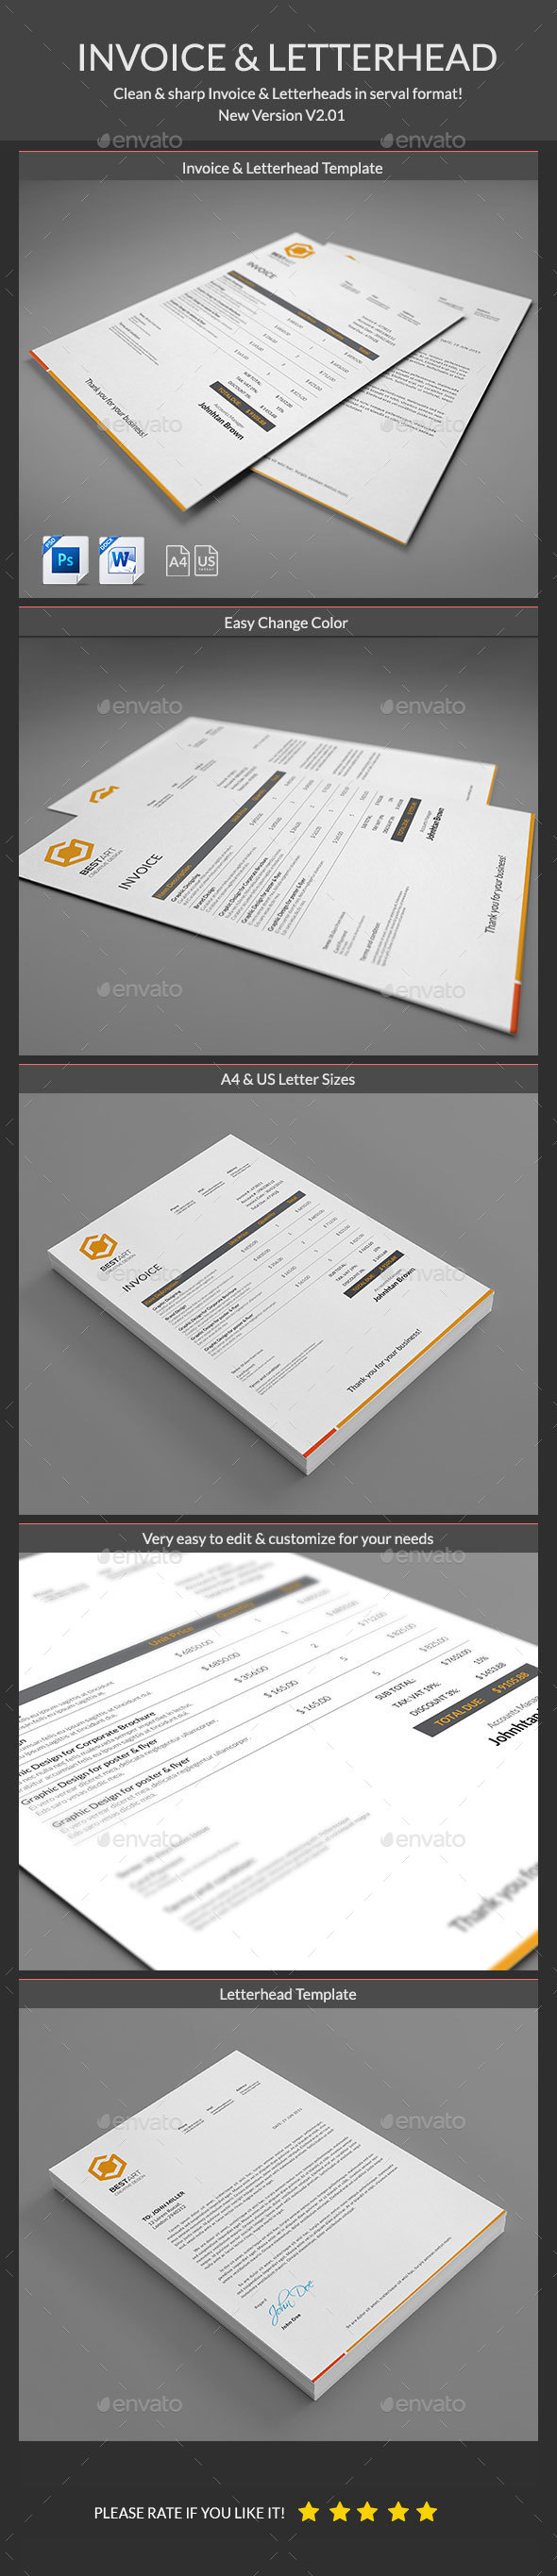 Invoice with letterhead template psd download here http invoice with letterhead template psd download here httpgraphicriver spiritdancerdesigns Choice Image